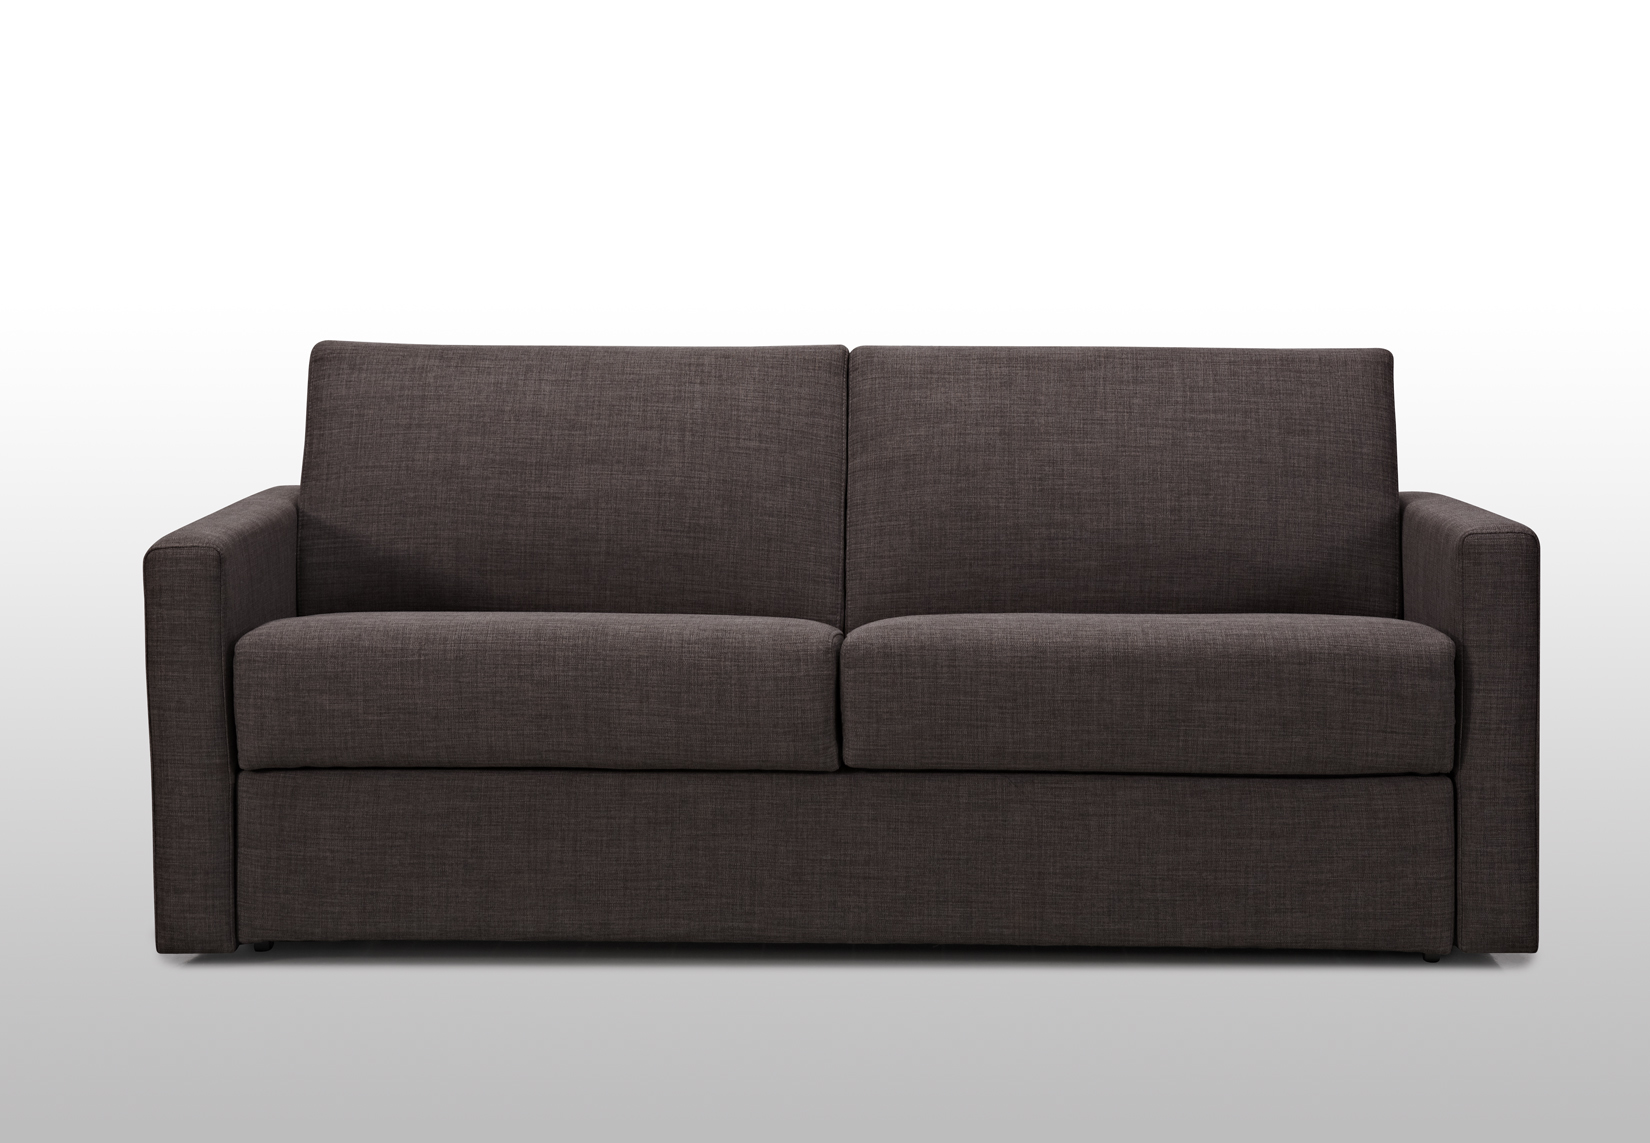 yaris_sofa_bed.jpg